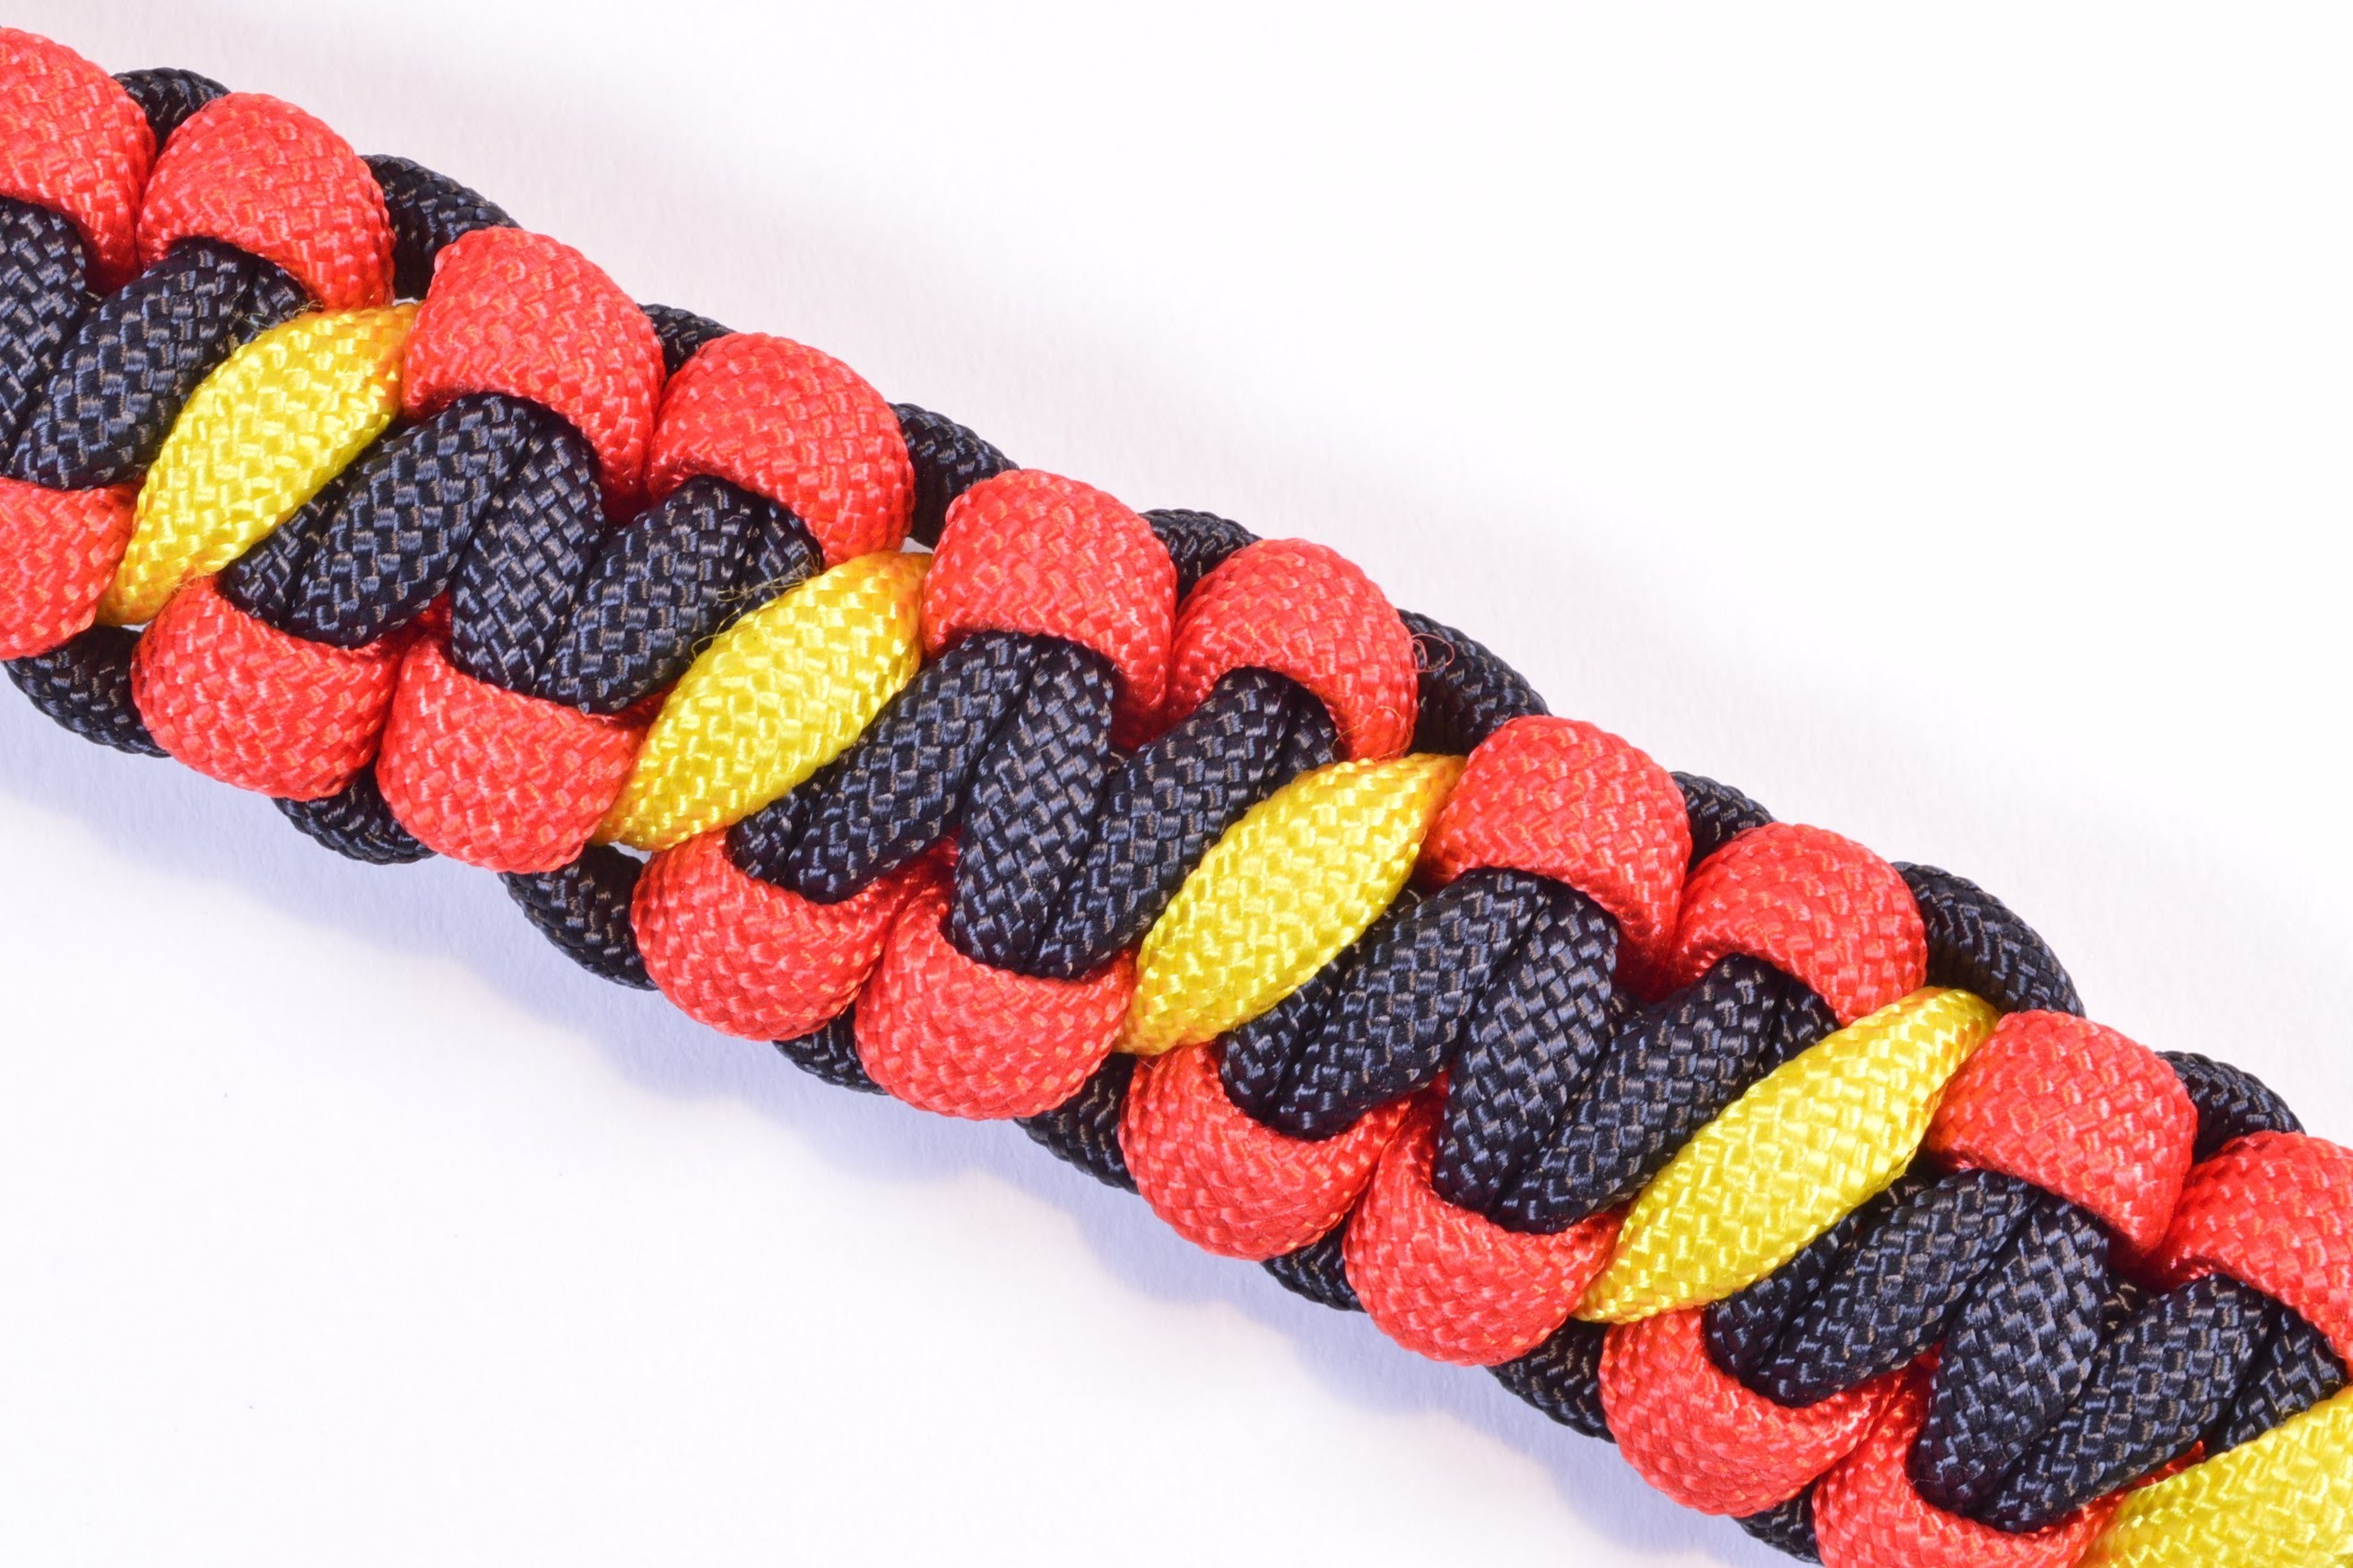 How to Make a Coral Snake Paracord Survival Bracelet - BoredParacord